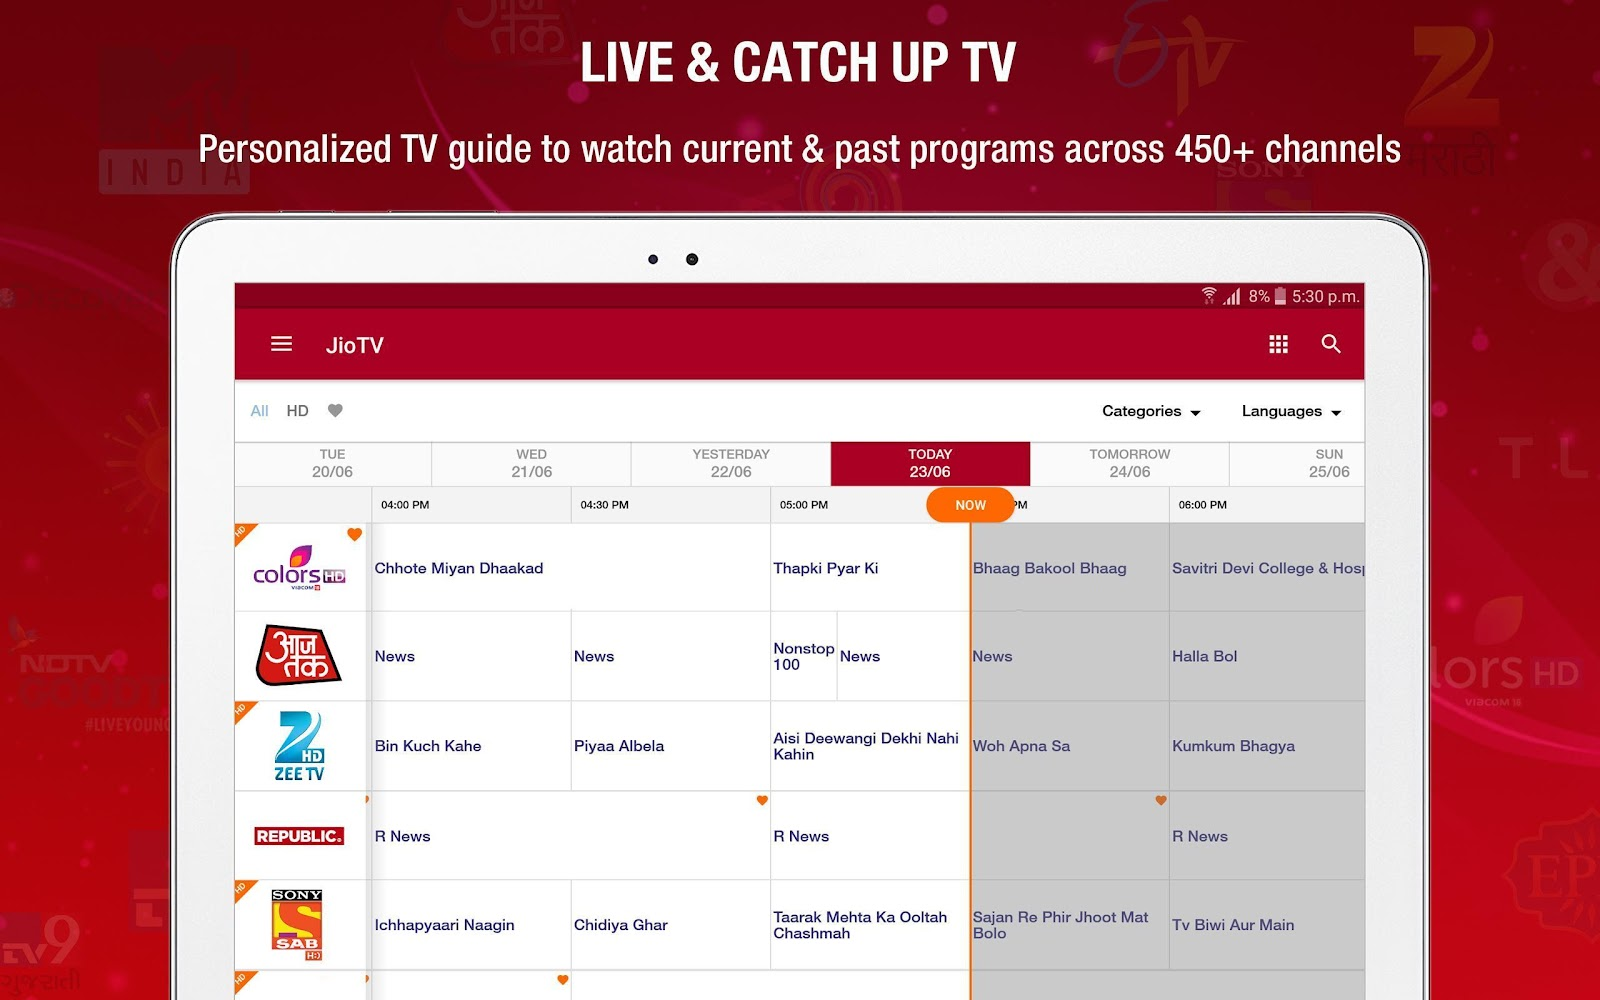 JioTV is an Android mobile app by Reliance Jio Infocomm